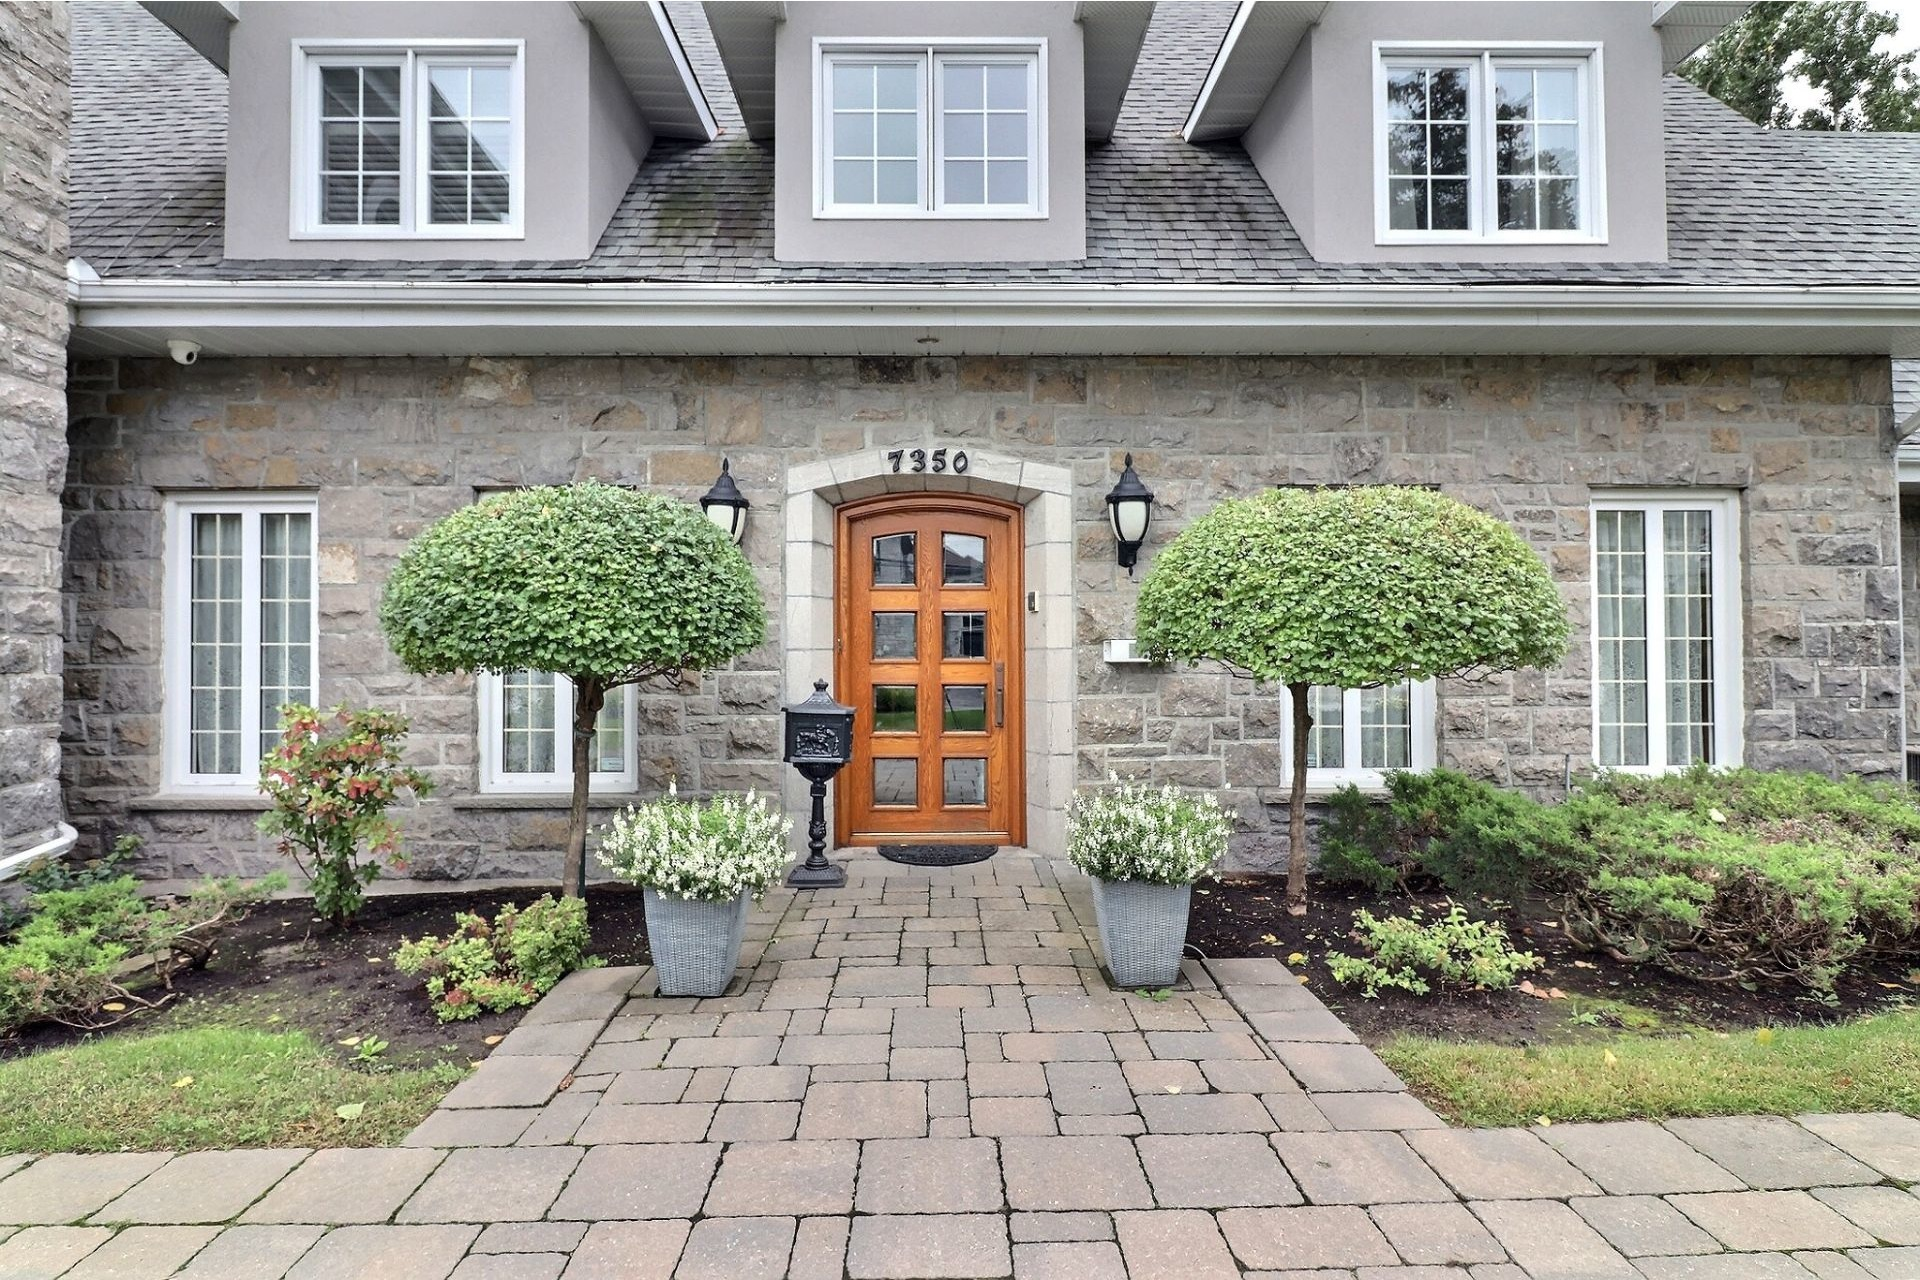 image 5 - House For sale Duvernay Laval